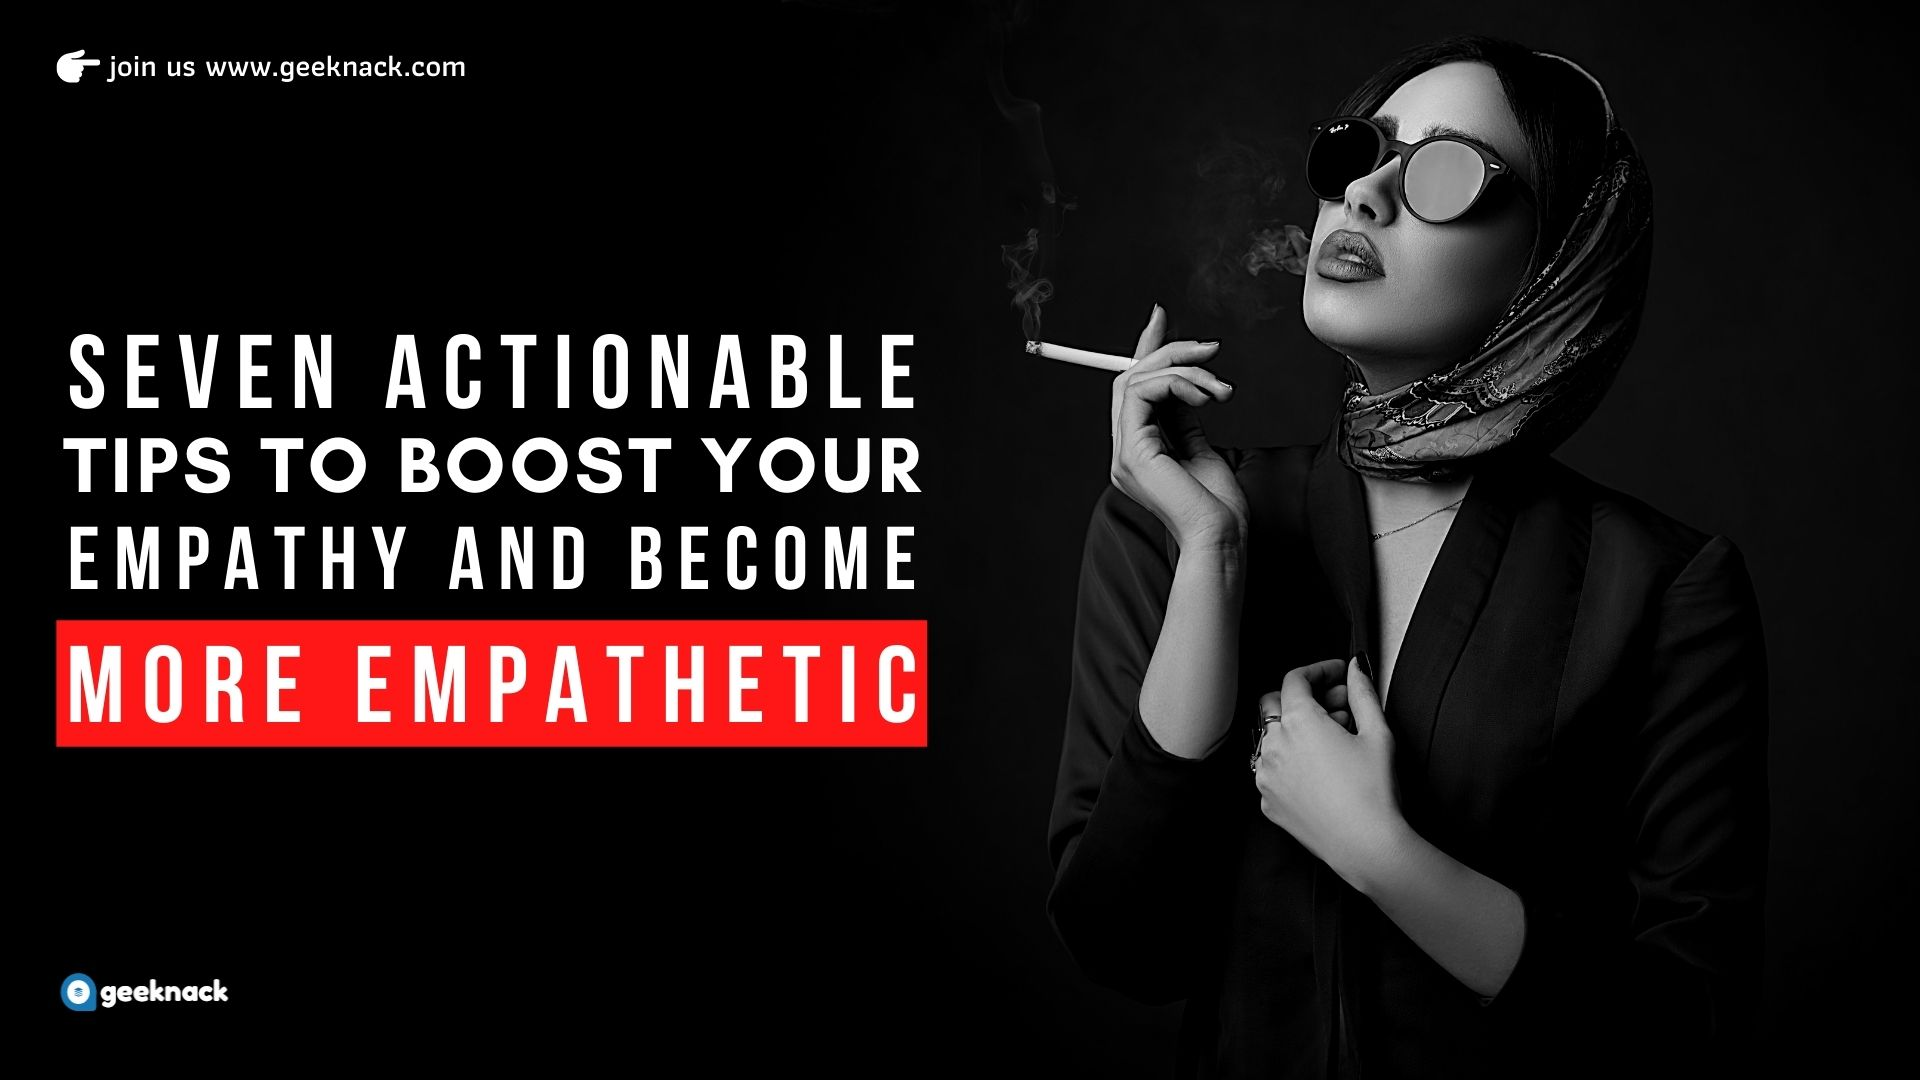 Seven Actionable Tips To Boost Your Empathy And Become More Empathetic